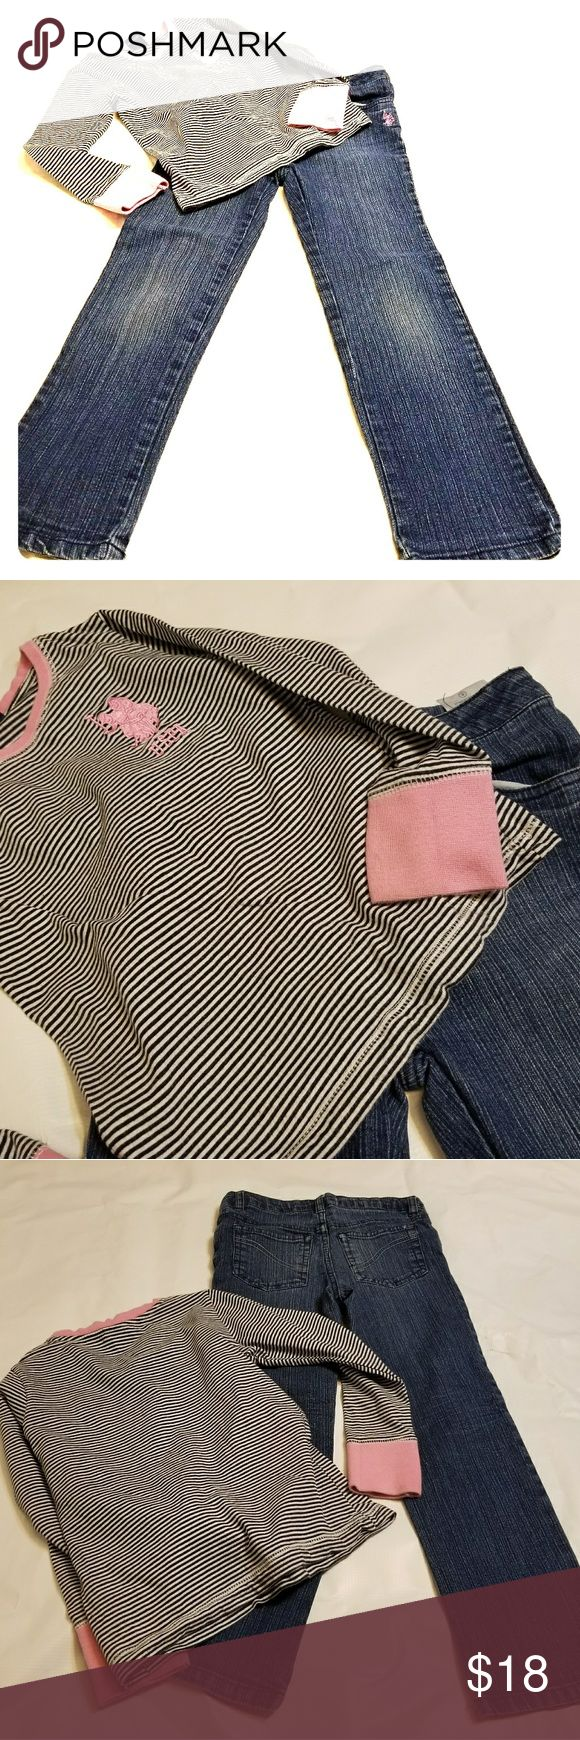 Girls polo ralp lauren long sleeve with jeans Girls size 7 Polo Ralph Lauren outfit, includes long sleeve grey stripe shirt with pink trim, also a pair of dark denim jeans with mild acid fade look. Out fit looks great. Polo by Ralph Lauren Bottoms Jeans